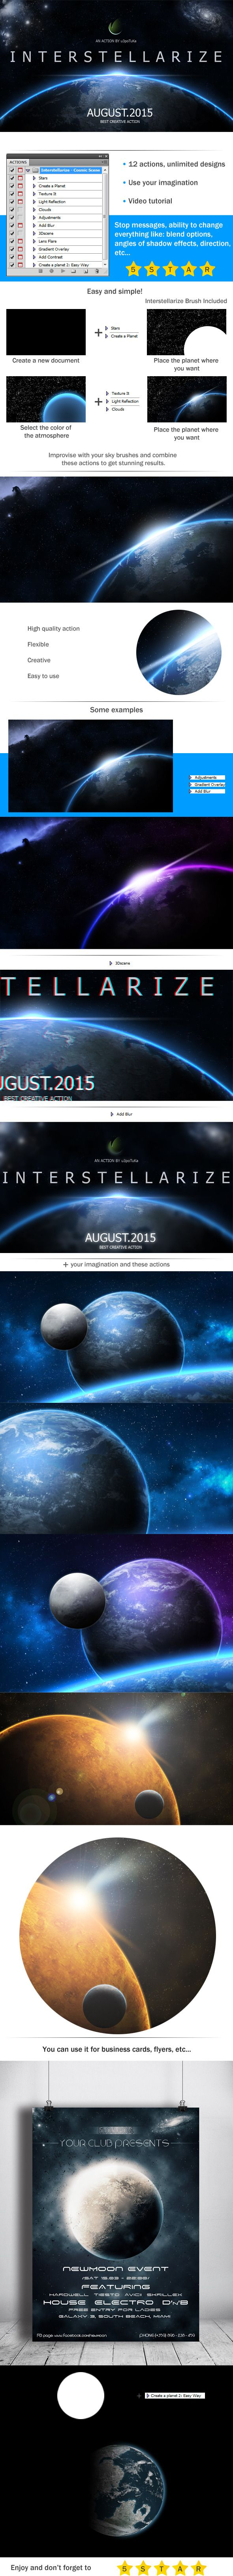 Interstellarize - Cosmic Scene Action